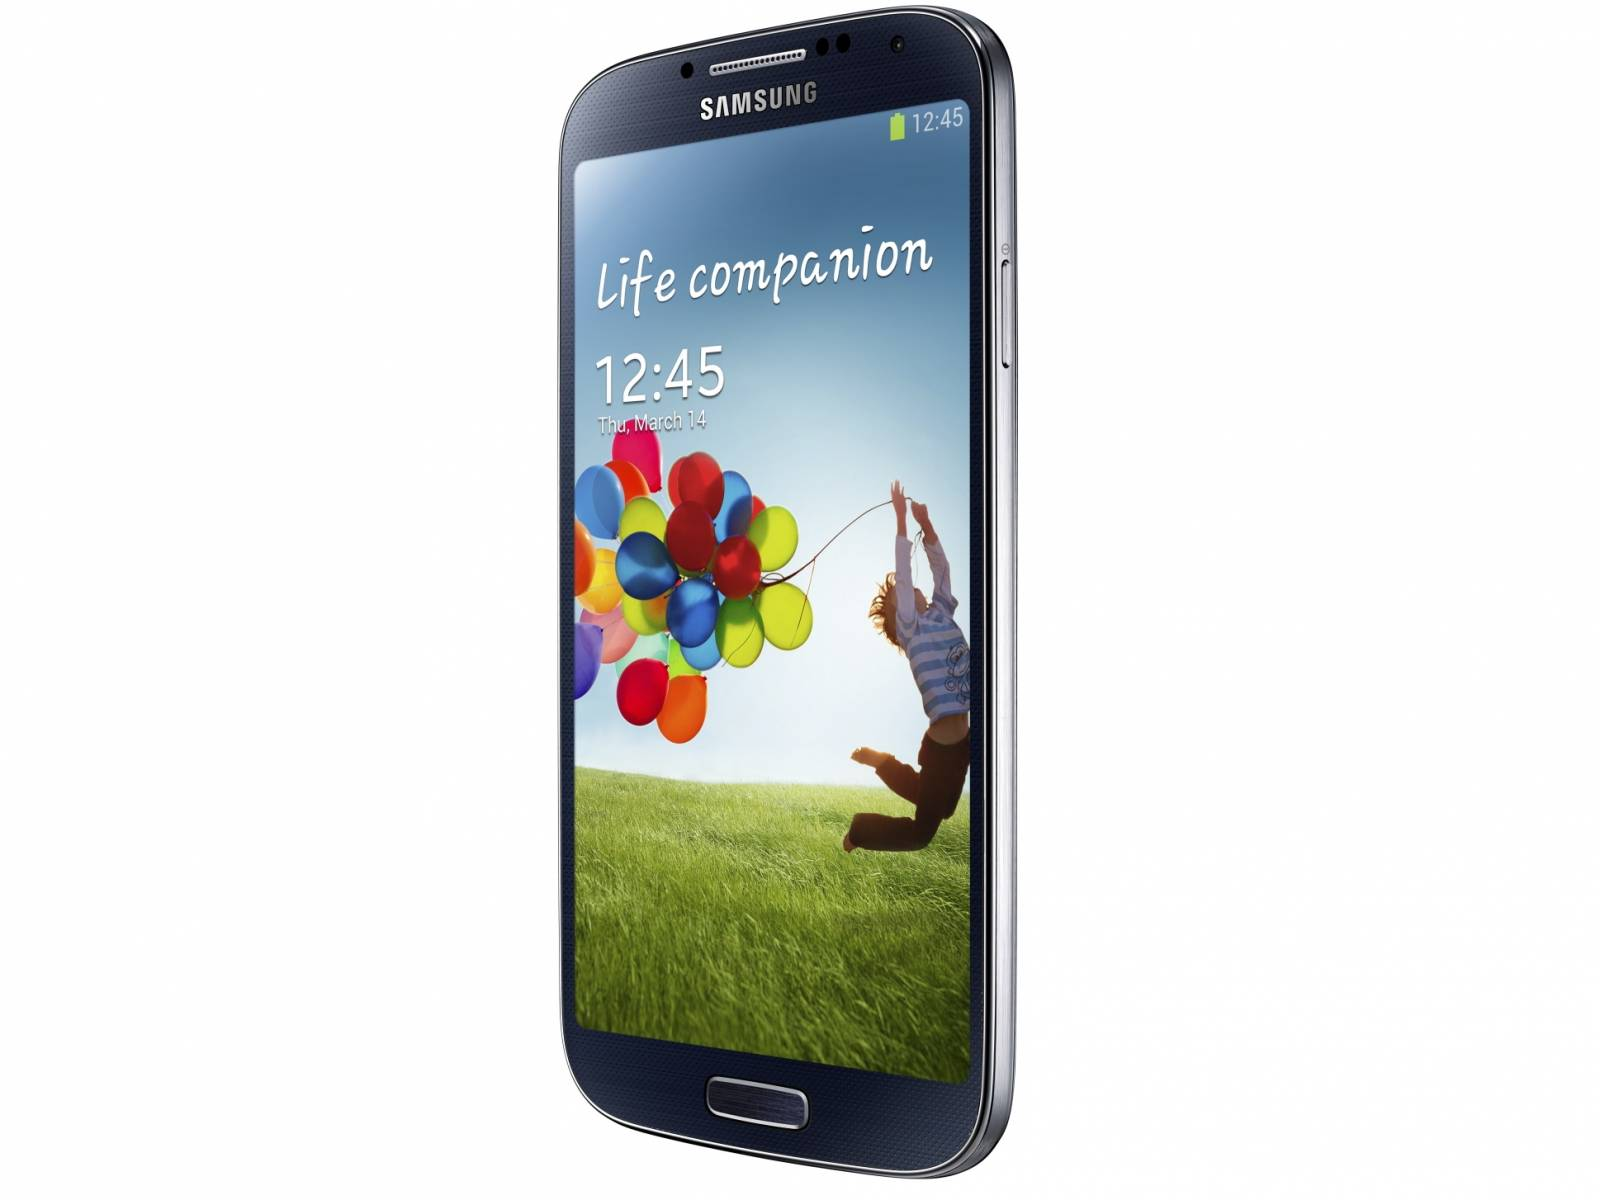 Samsung Galaxy S4 on Gps Tracking Wiring Diagram